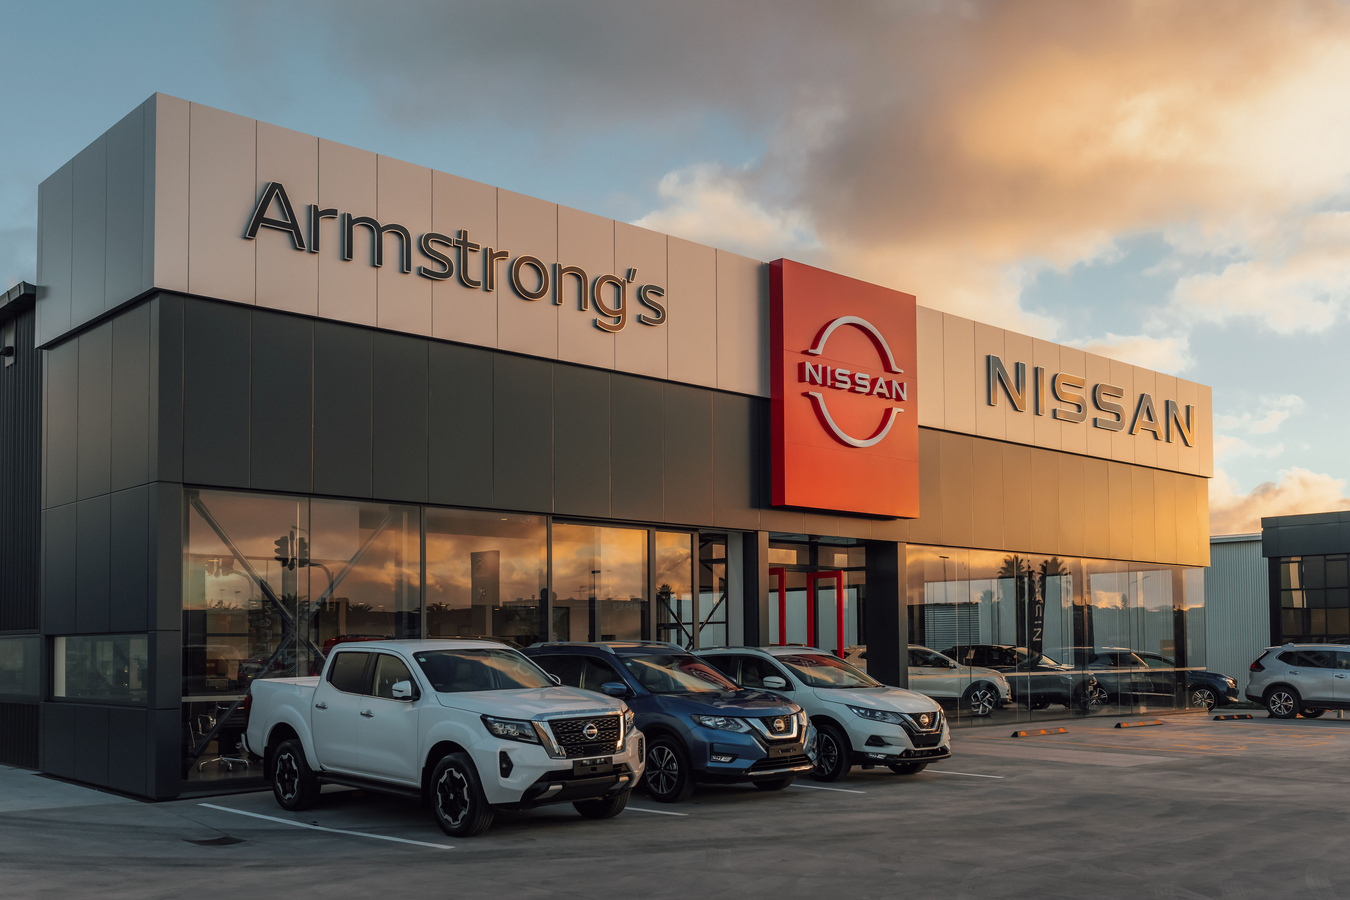 Armstrong's East Auckland